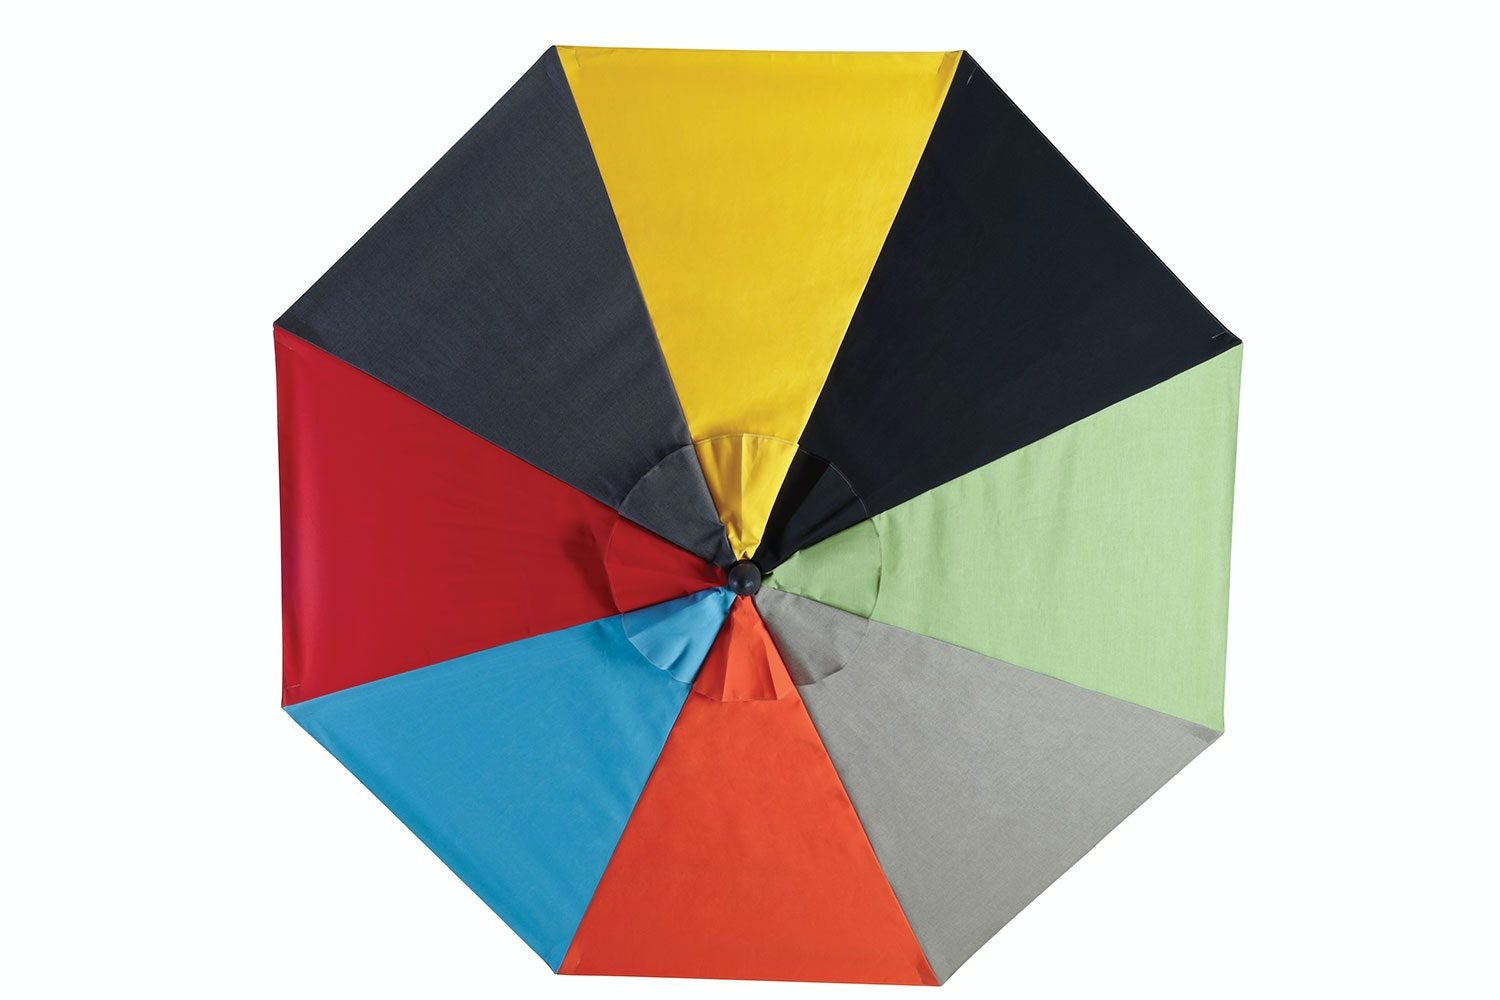 Triton 3.5m Acrylic Outdoor Umbrella by Peros